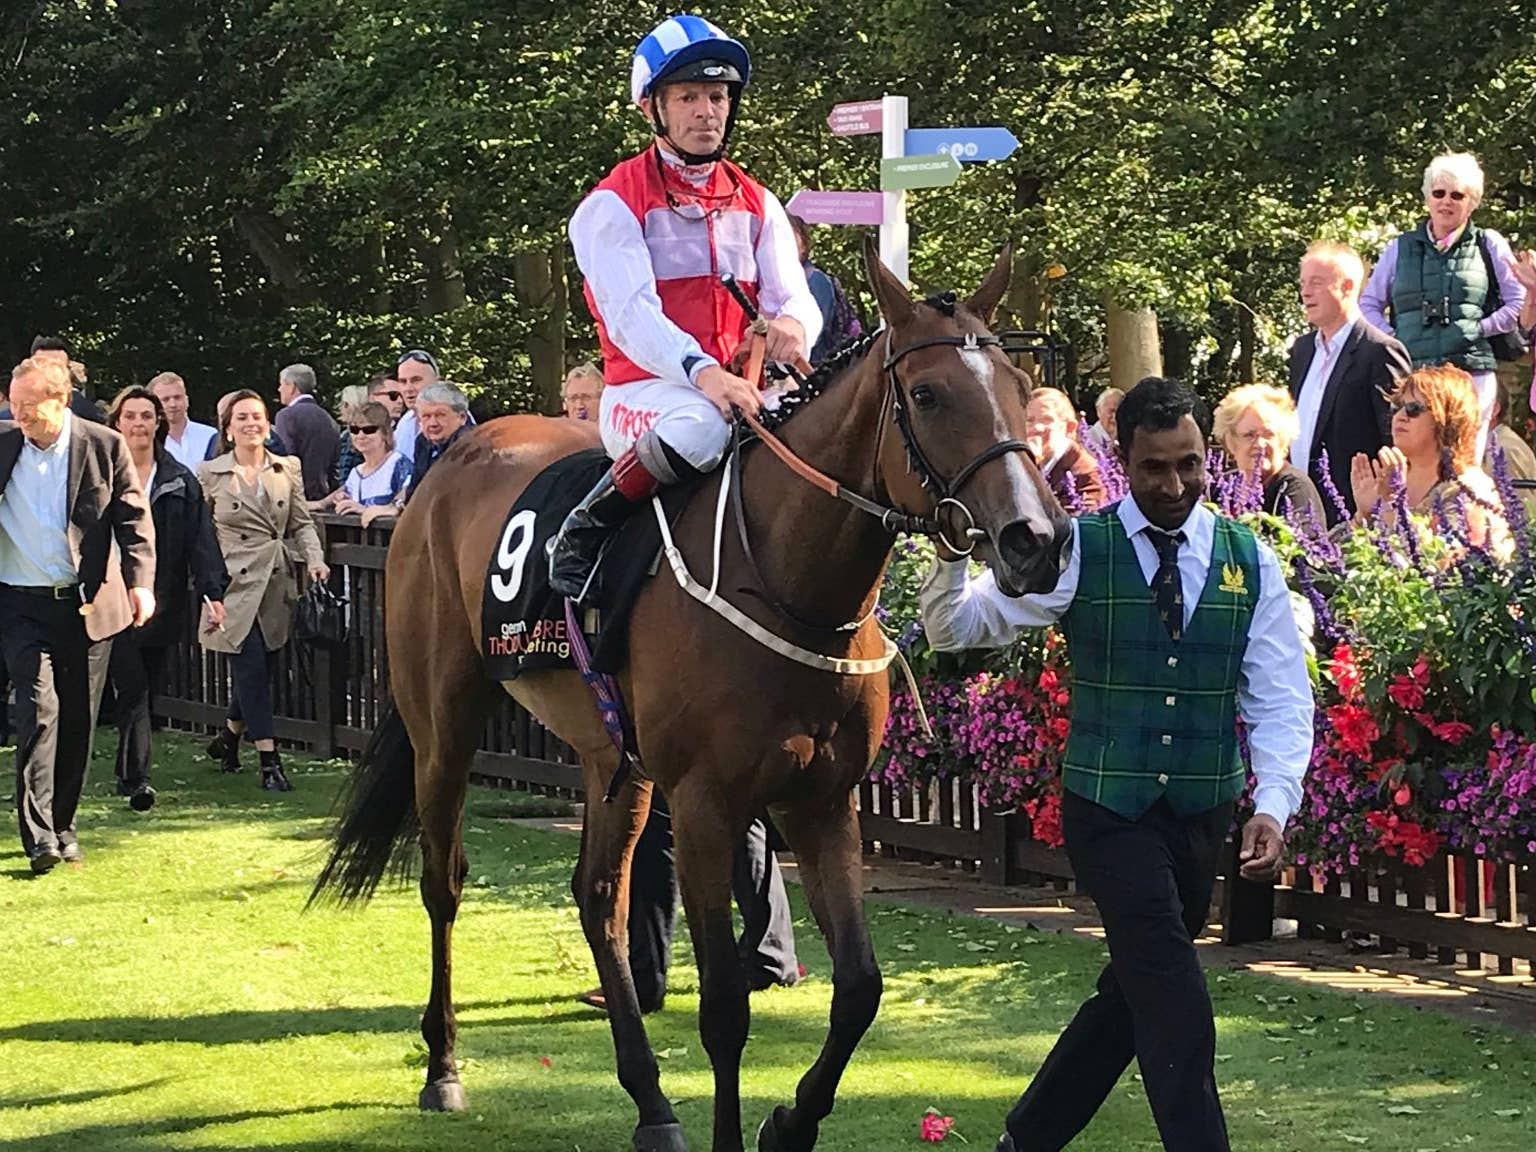 West End Girl won the Sweet Solera Stakes at Newmarket (Graham Clark)